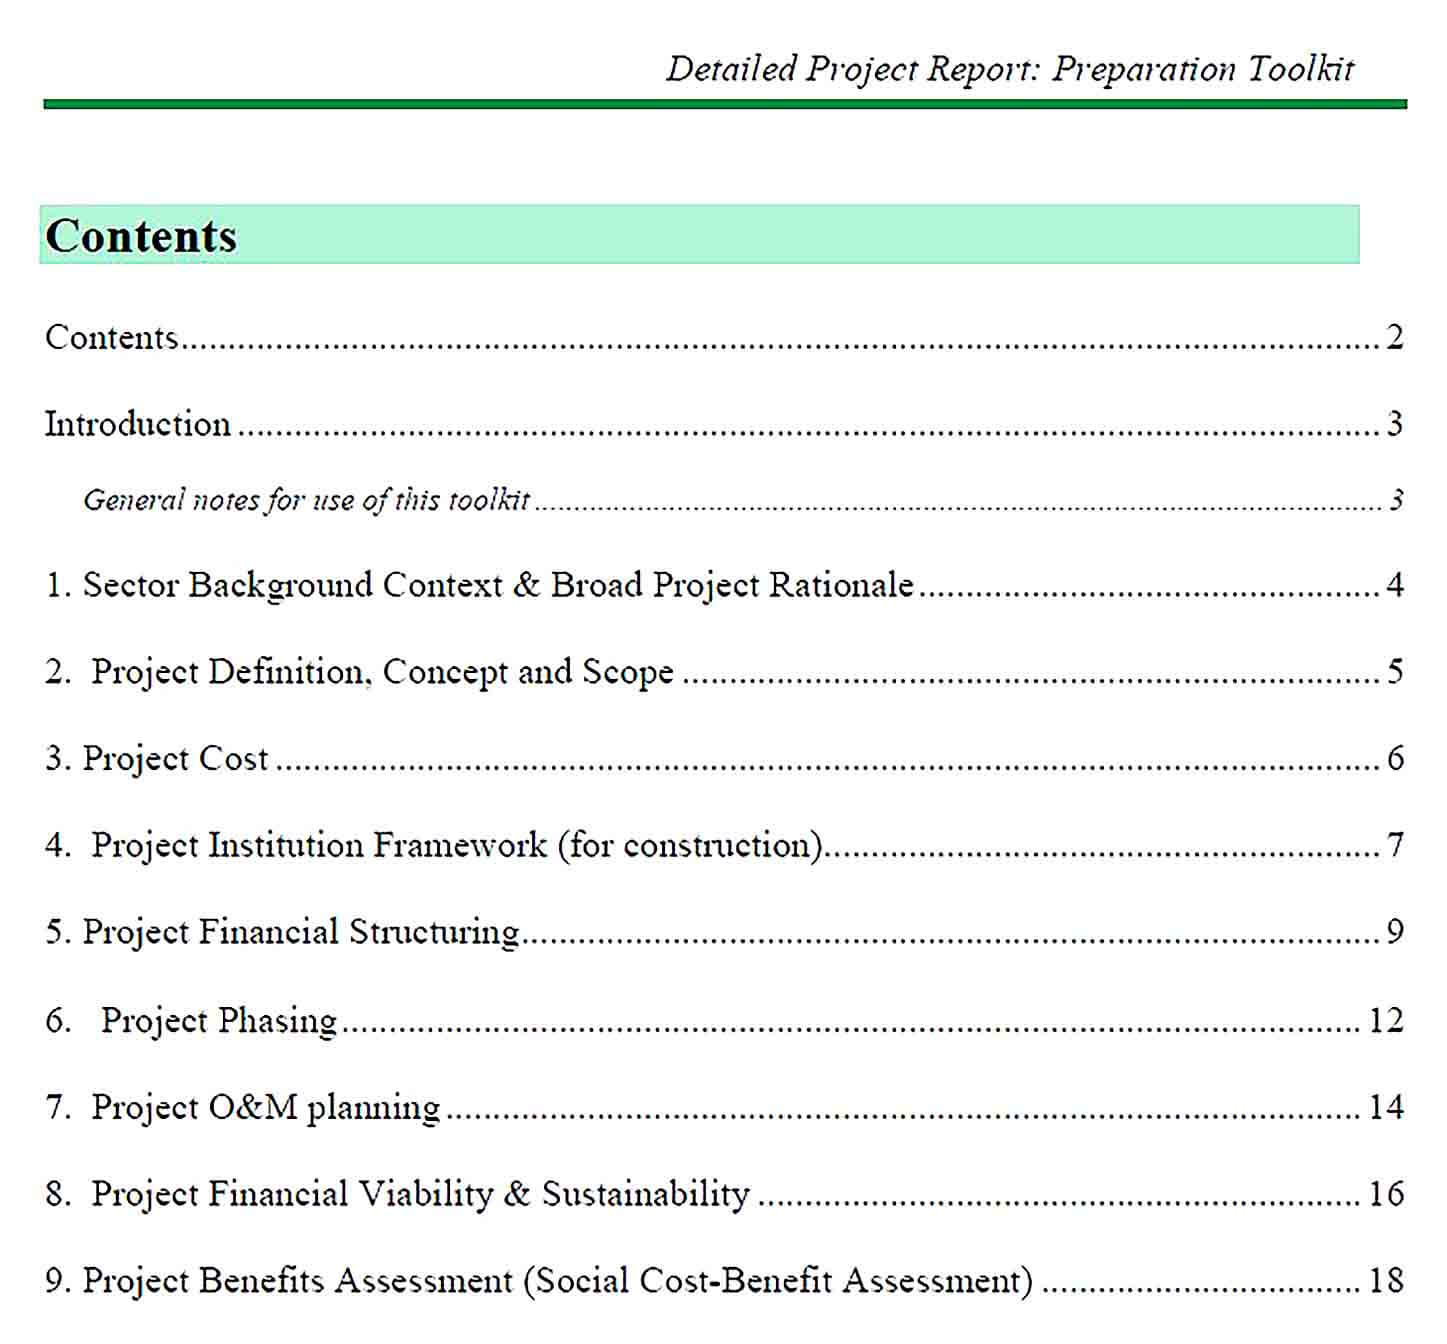 Sample Detailed Project Report Format